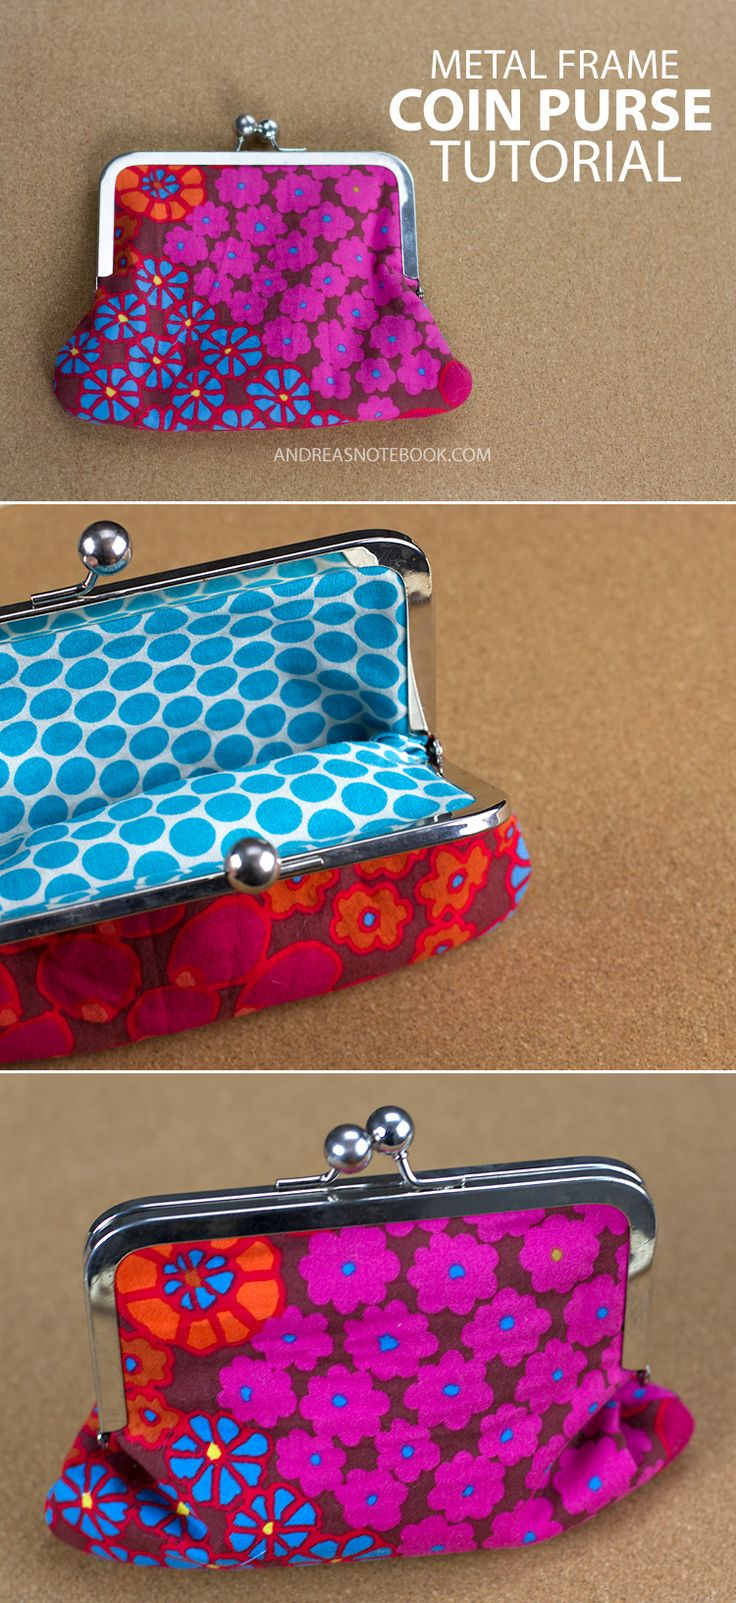 frame coin purse                                                       …                                                                                                                                                                                 More